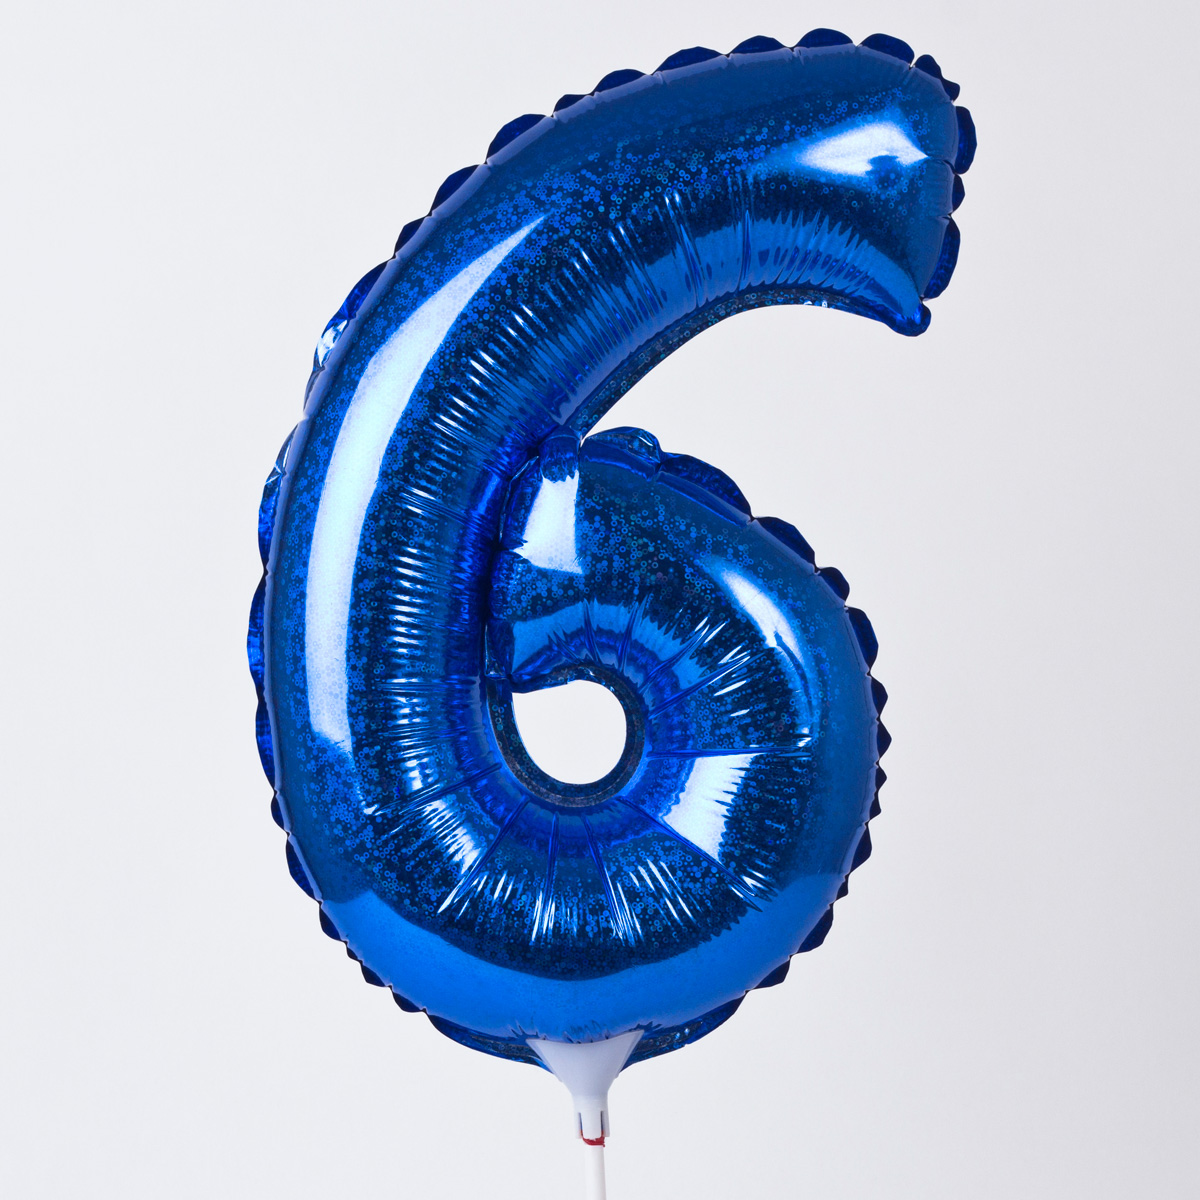 Holographic Blue Number 6 Balloon On A Stick